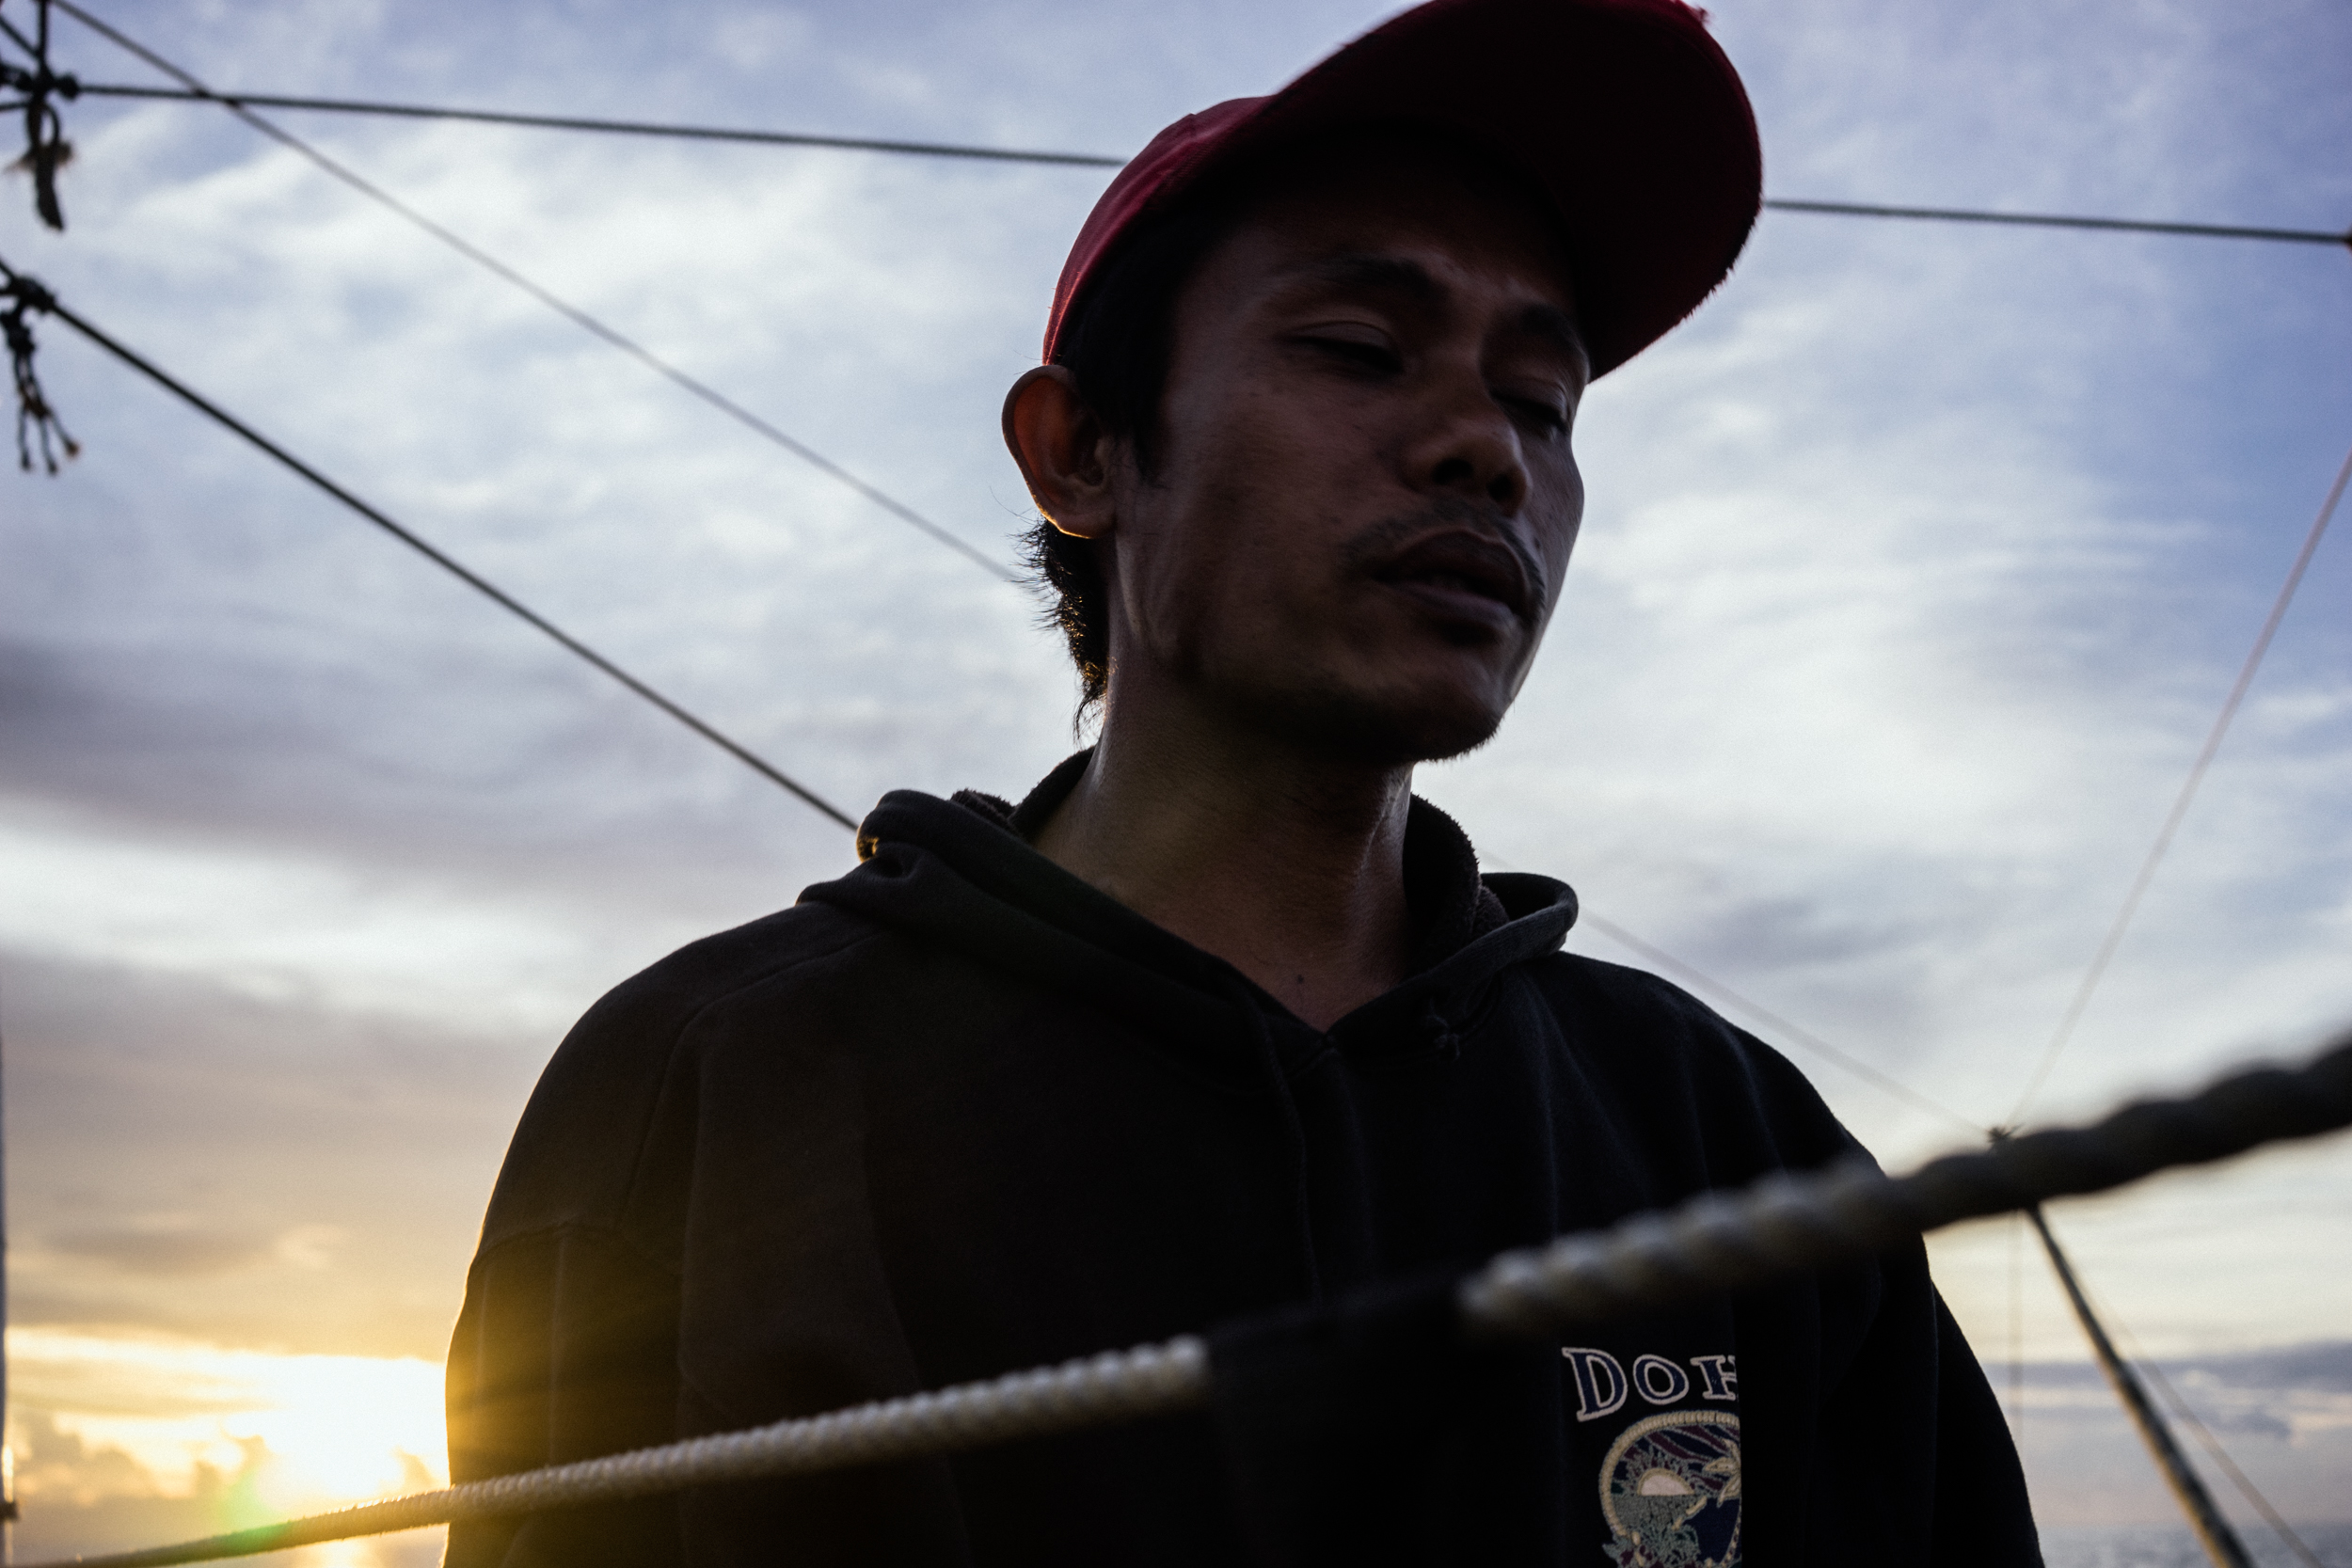 Kalibo, Philippines - September 21, 2015: Conrad Banihit, a Filipino fisherman, is seen aboard a fishing boat. Conrad is a victim of a Singapore-based maritime manning agency that collected illegal placement fees from him, stationed him on a Taiwanese fishing vessel where he faced inhumane circumstances, and then failed to give him the salary he was promised. Today he has gotten out of the ship, and makes approximately 35 USD a month at a local fishing boat. Hannah Reyes